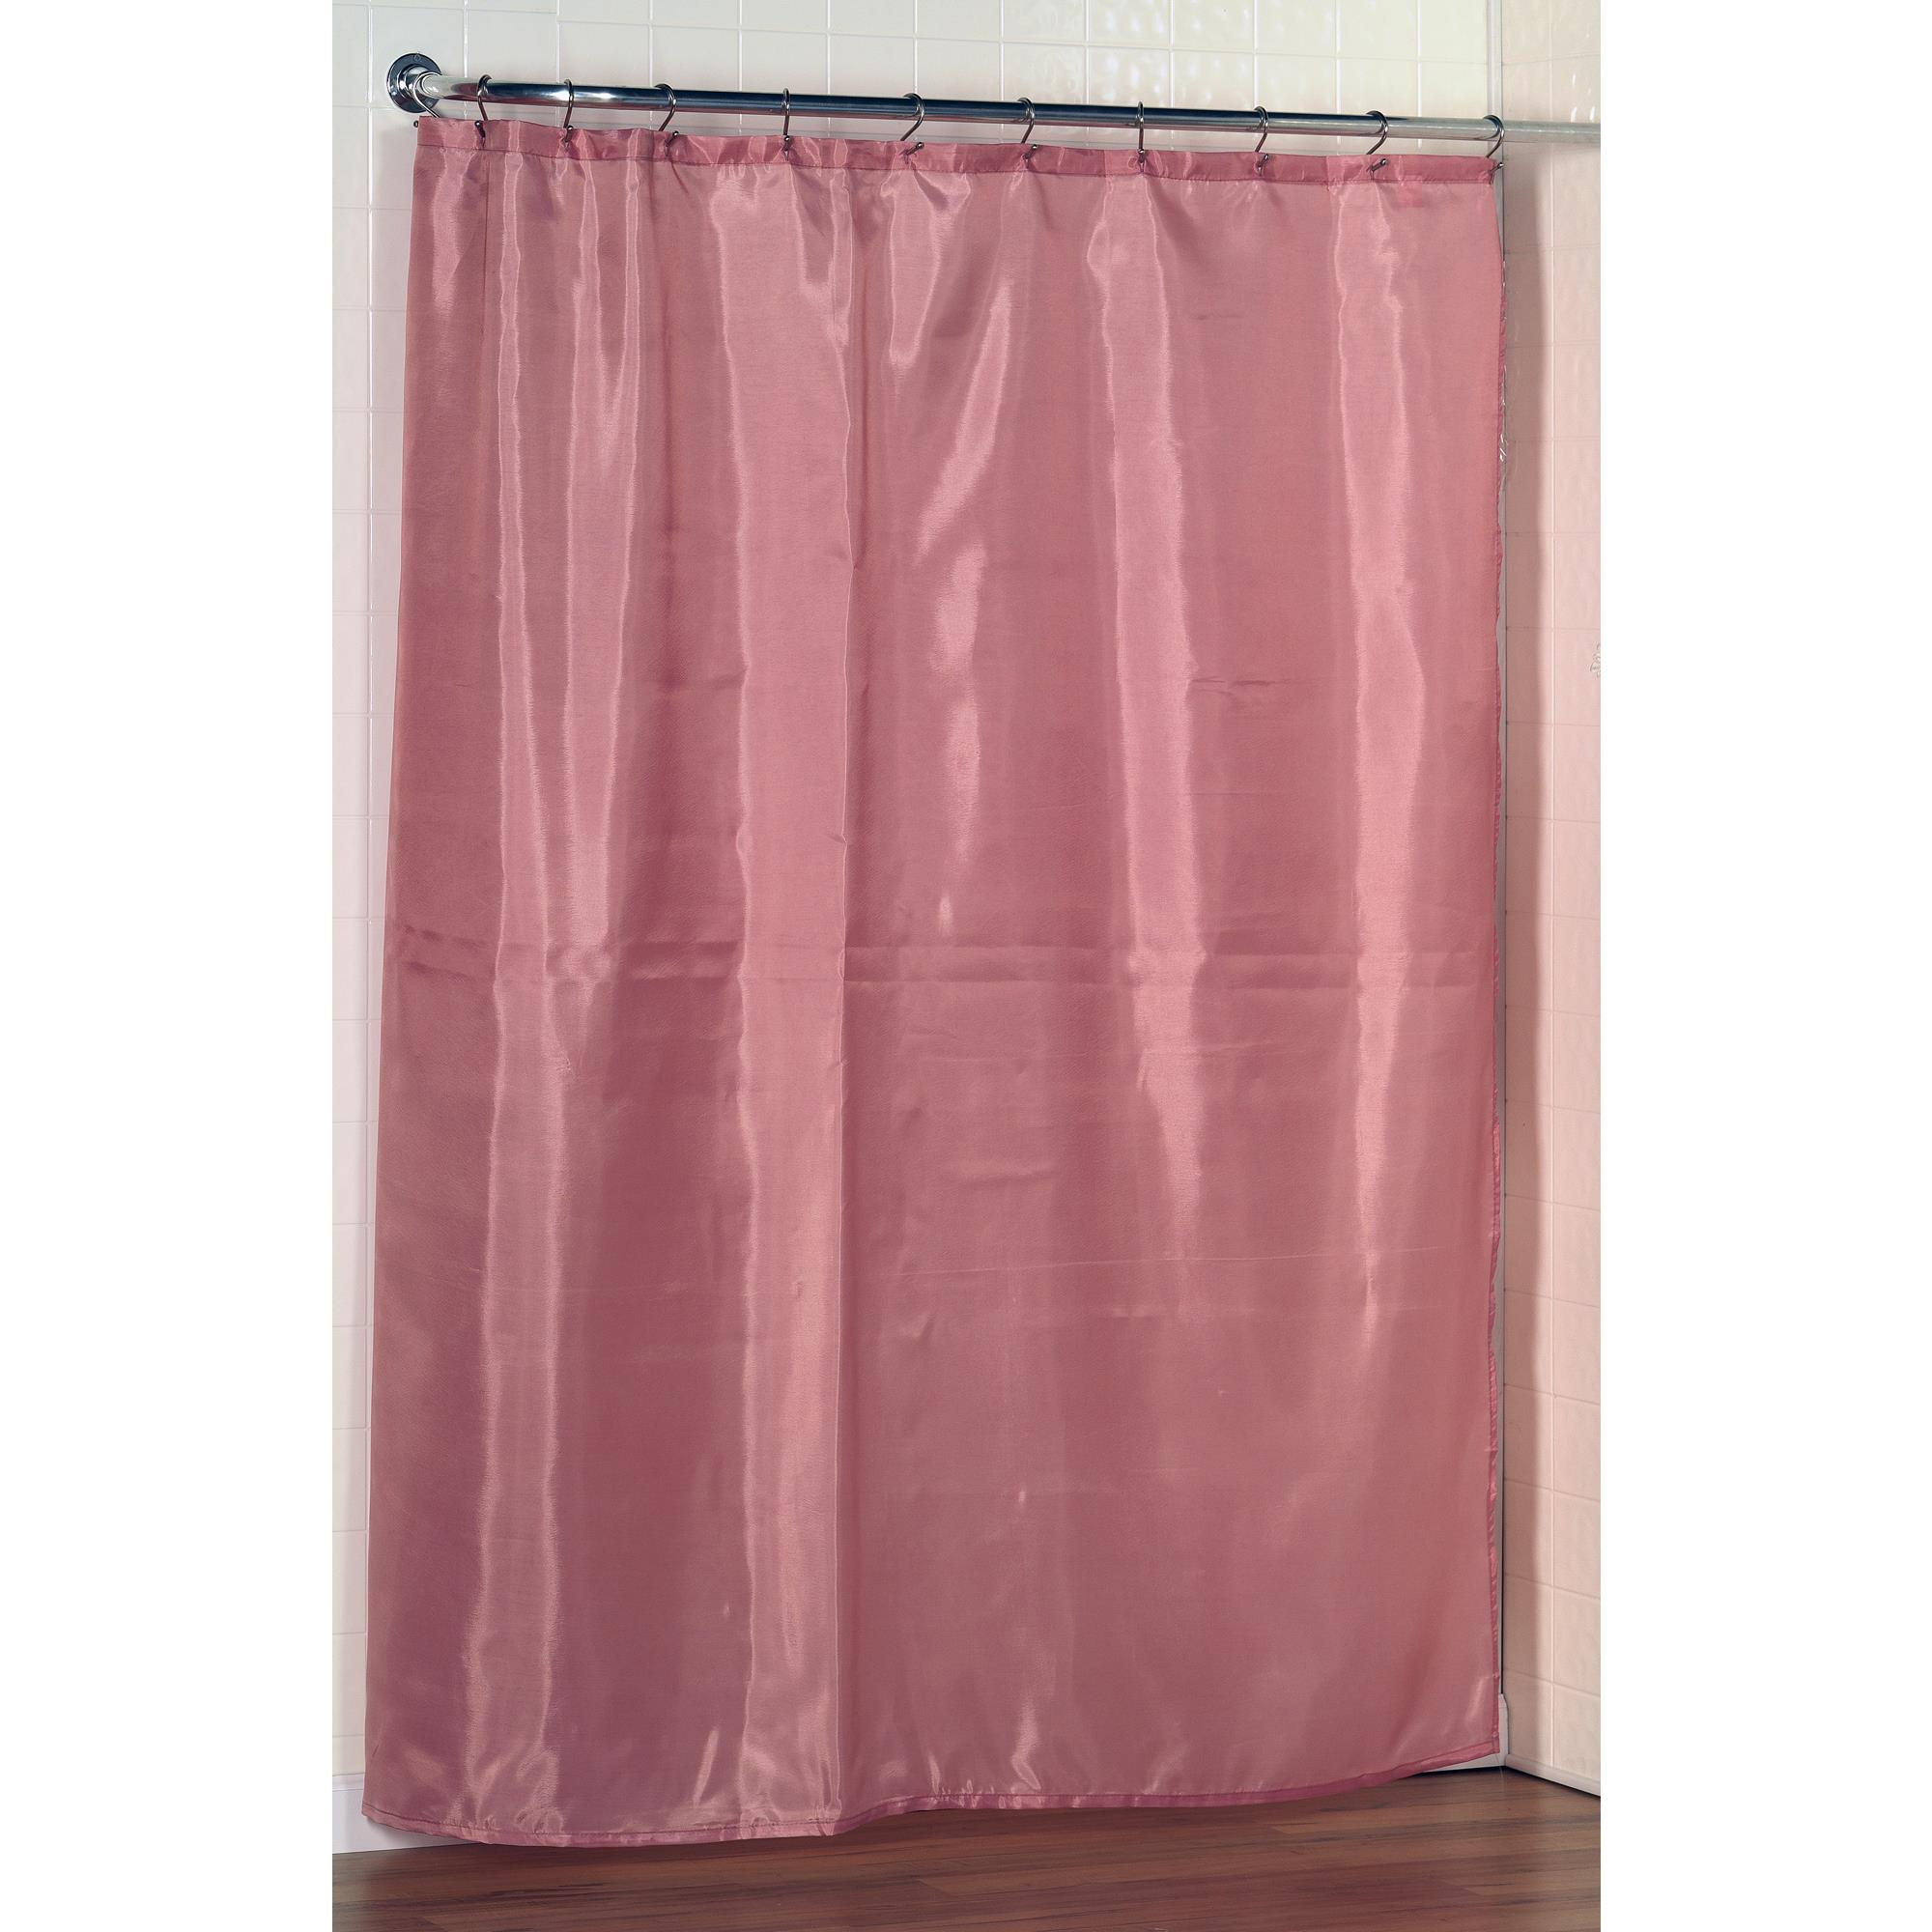 Carnation Home Standard Sized Polyester Fabric Shower Curtain Liner